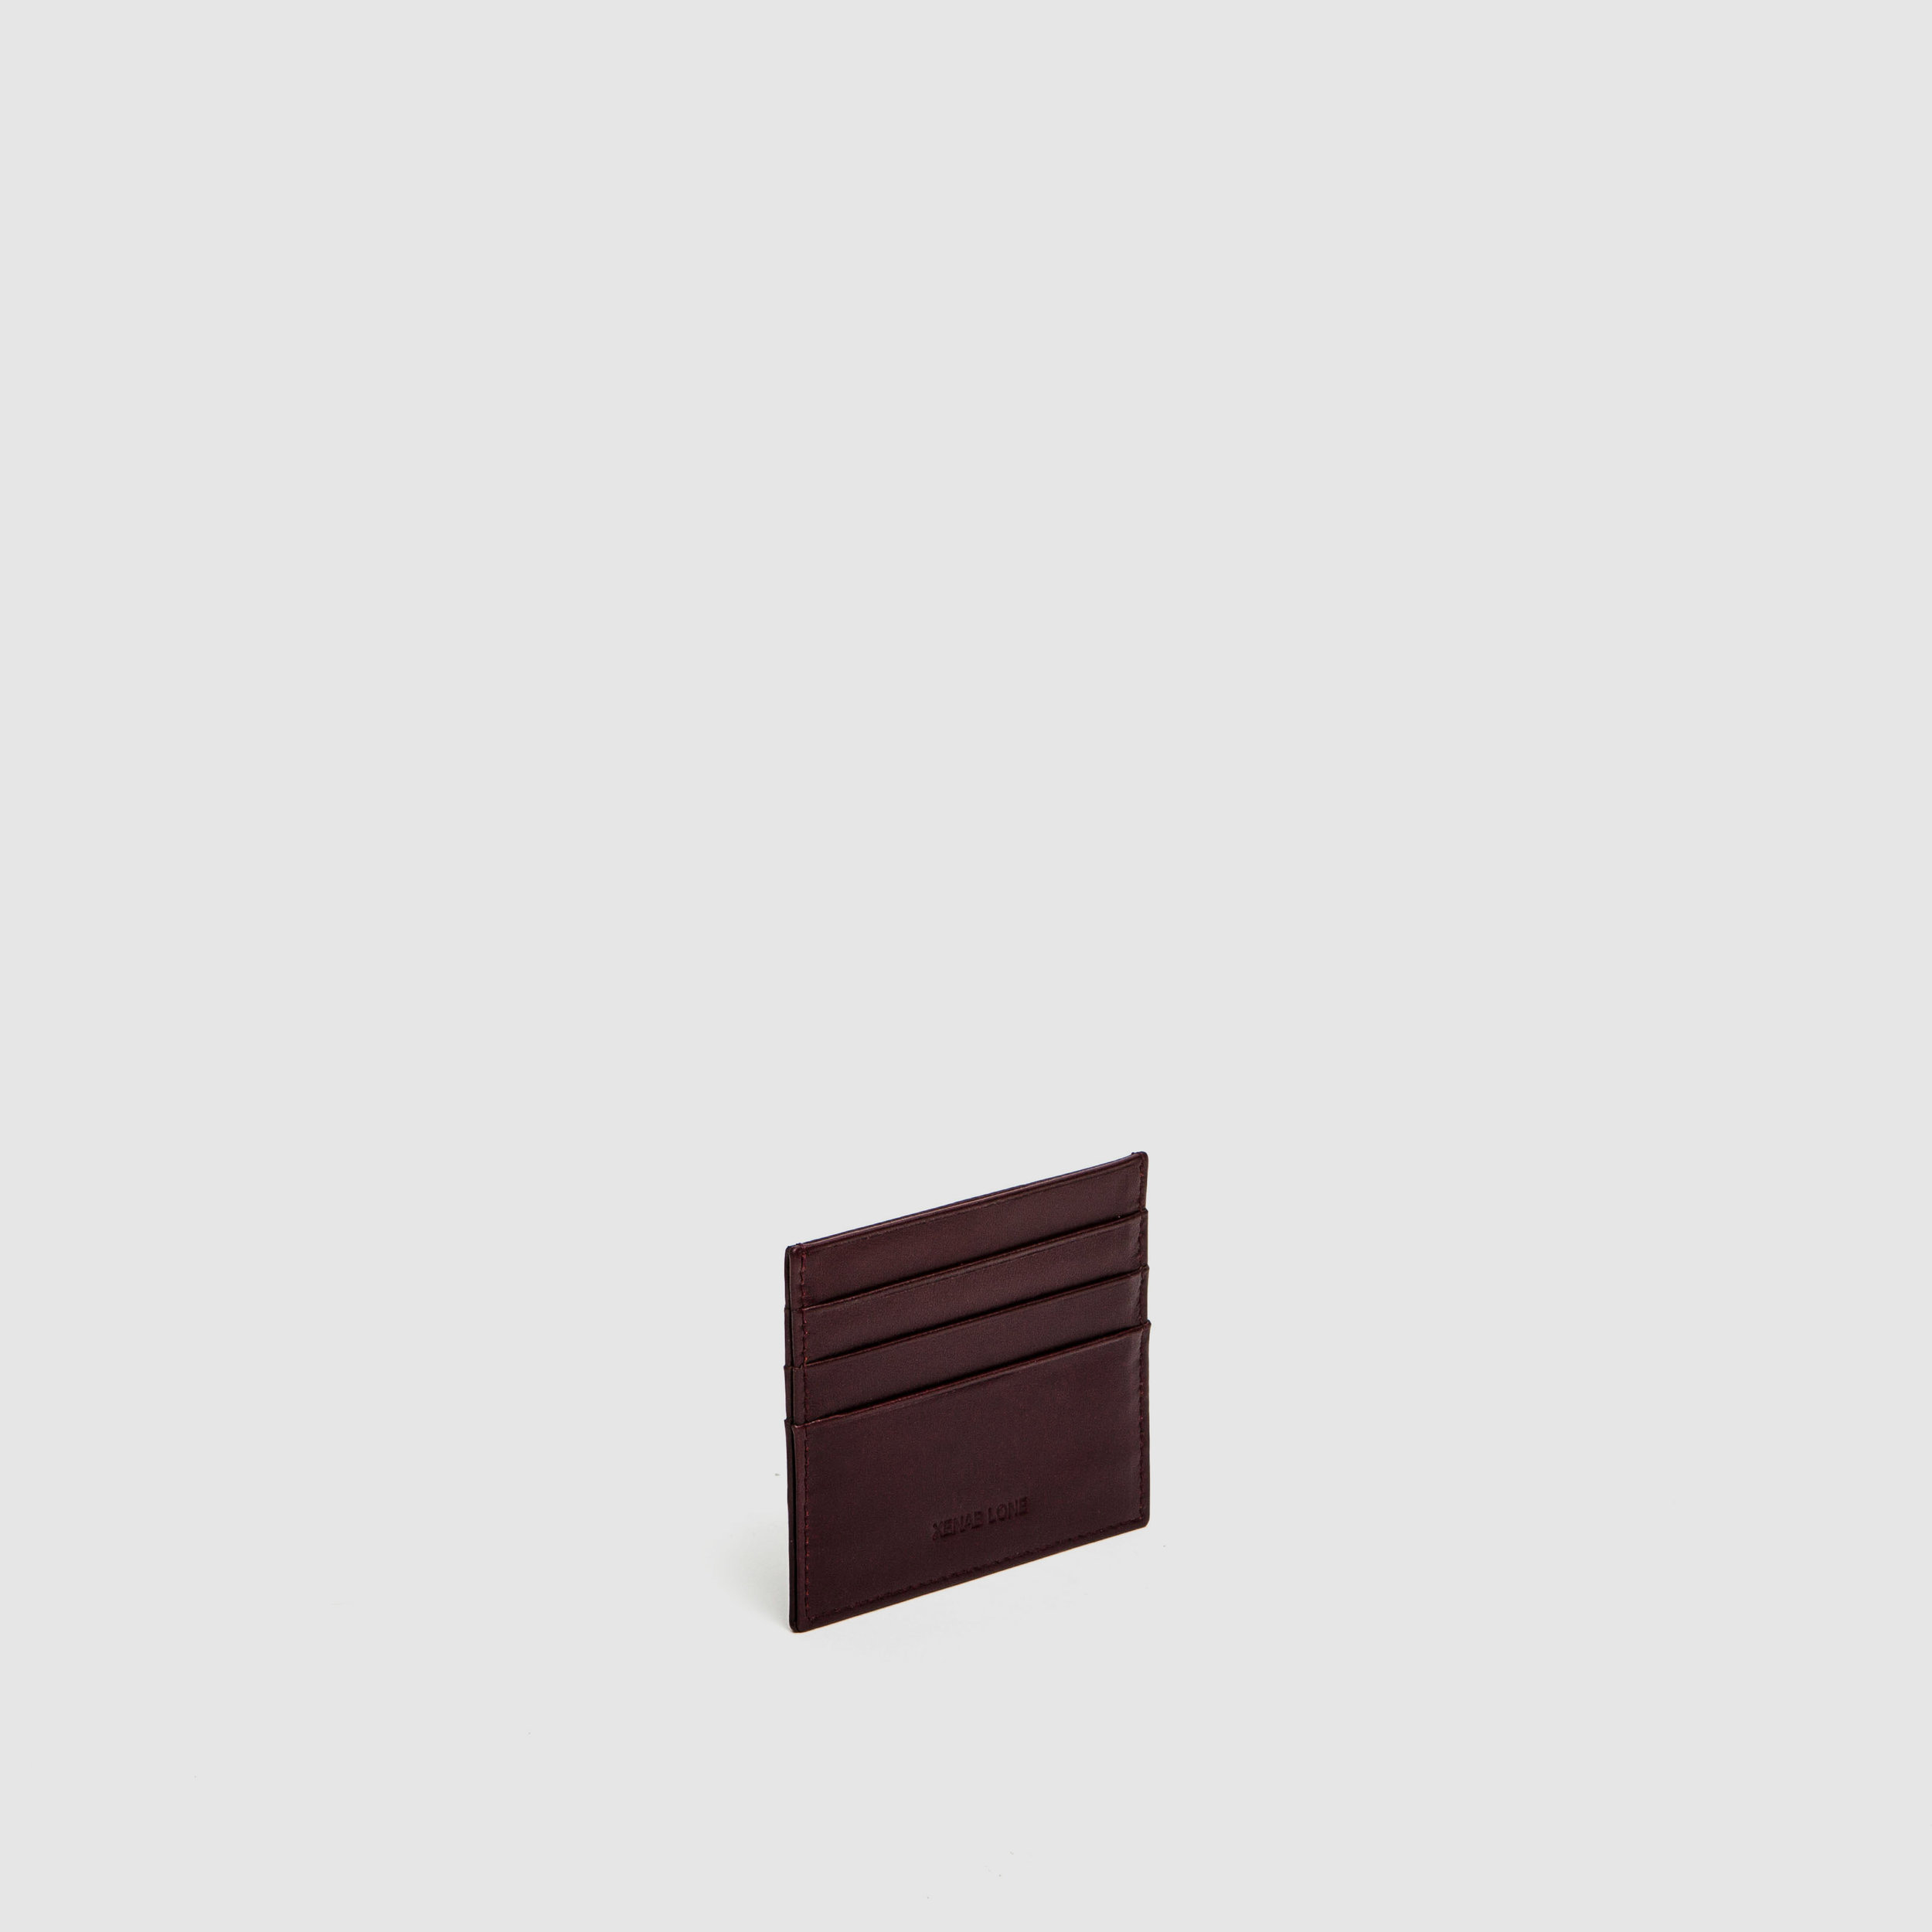 Wallets&Pouches_0001s_0001s_0002_Layer 43.jpg